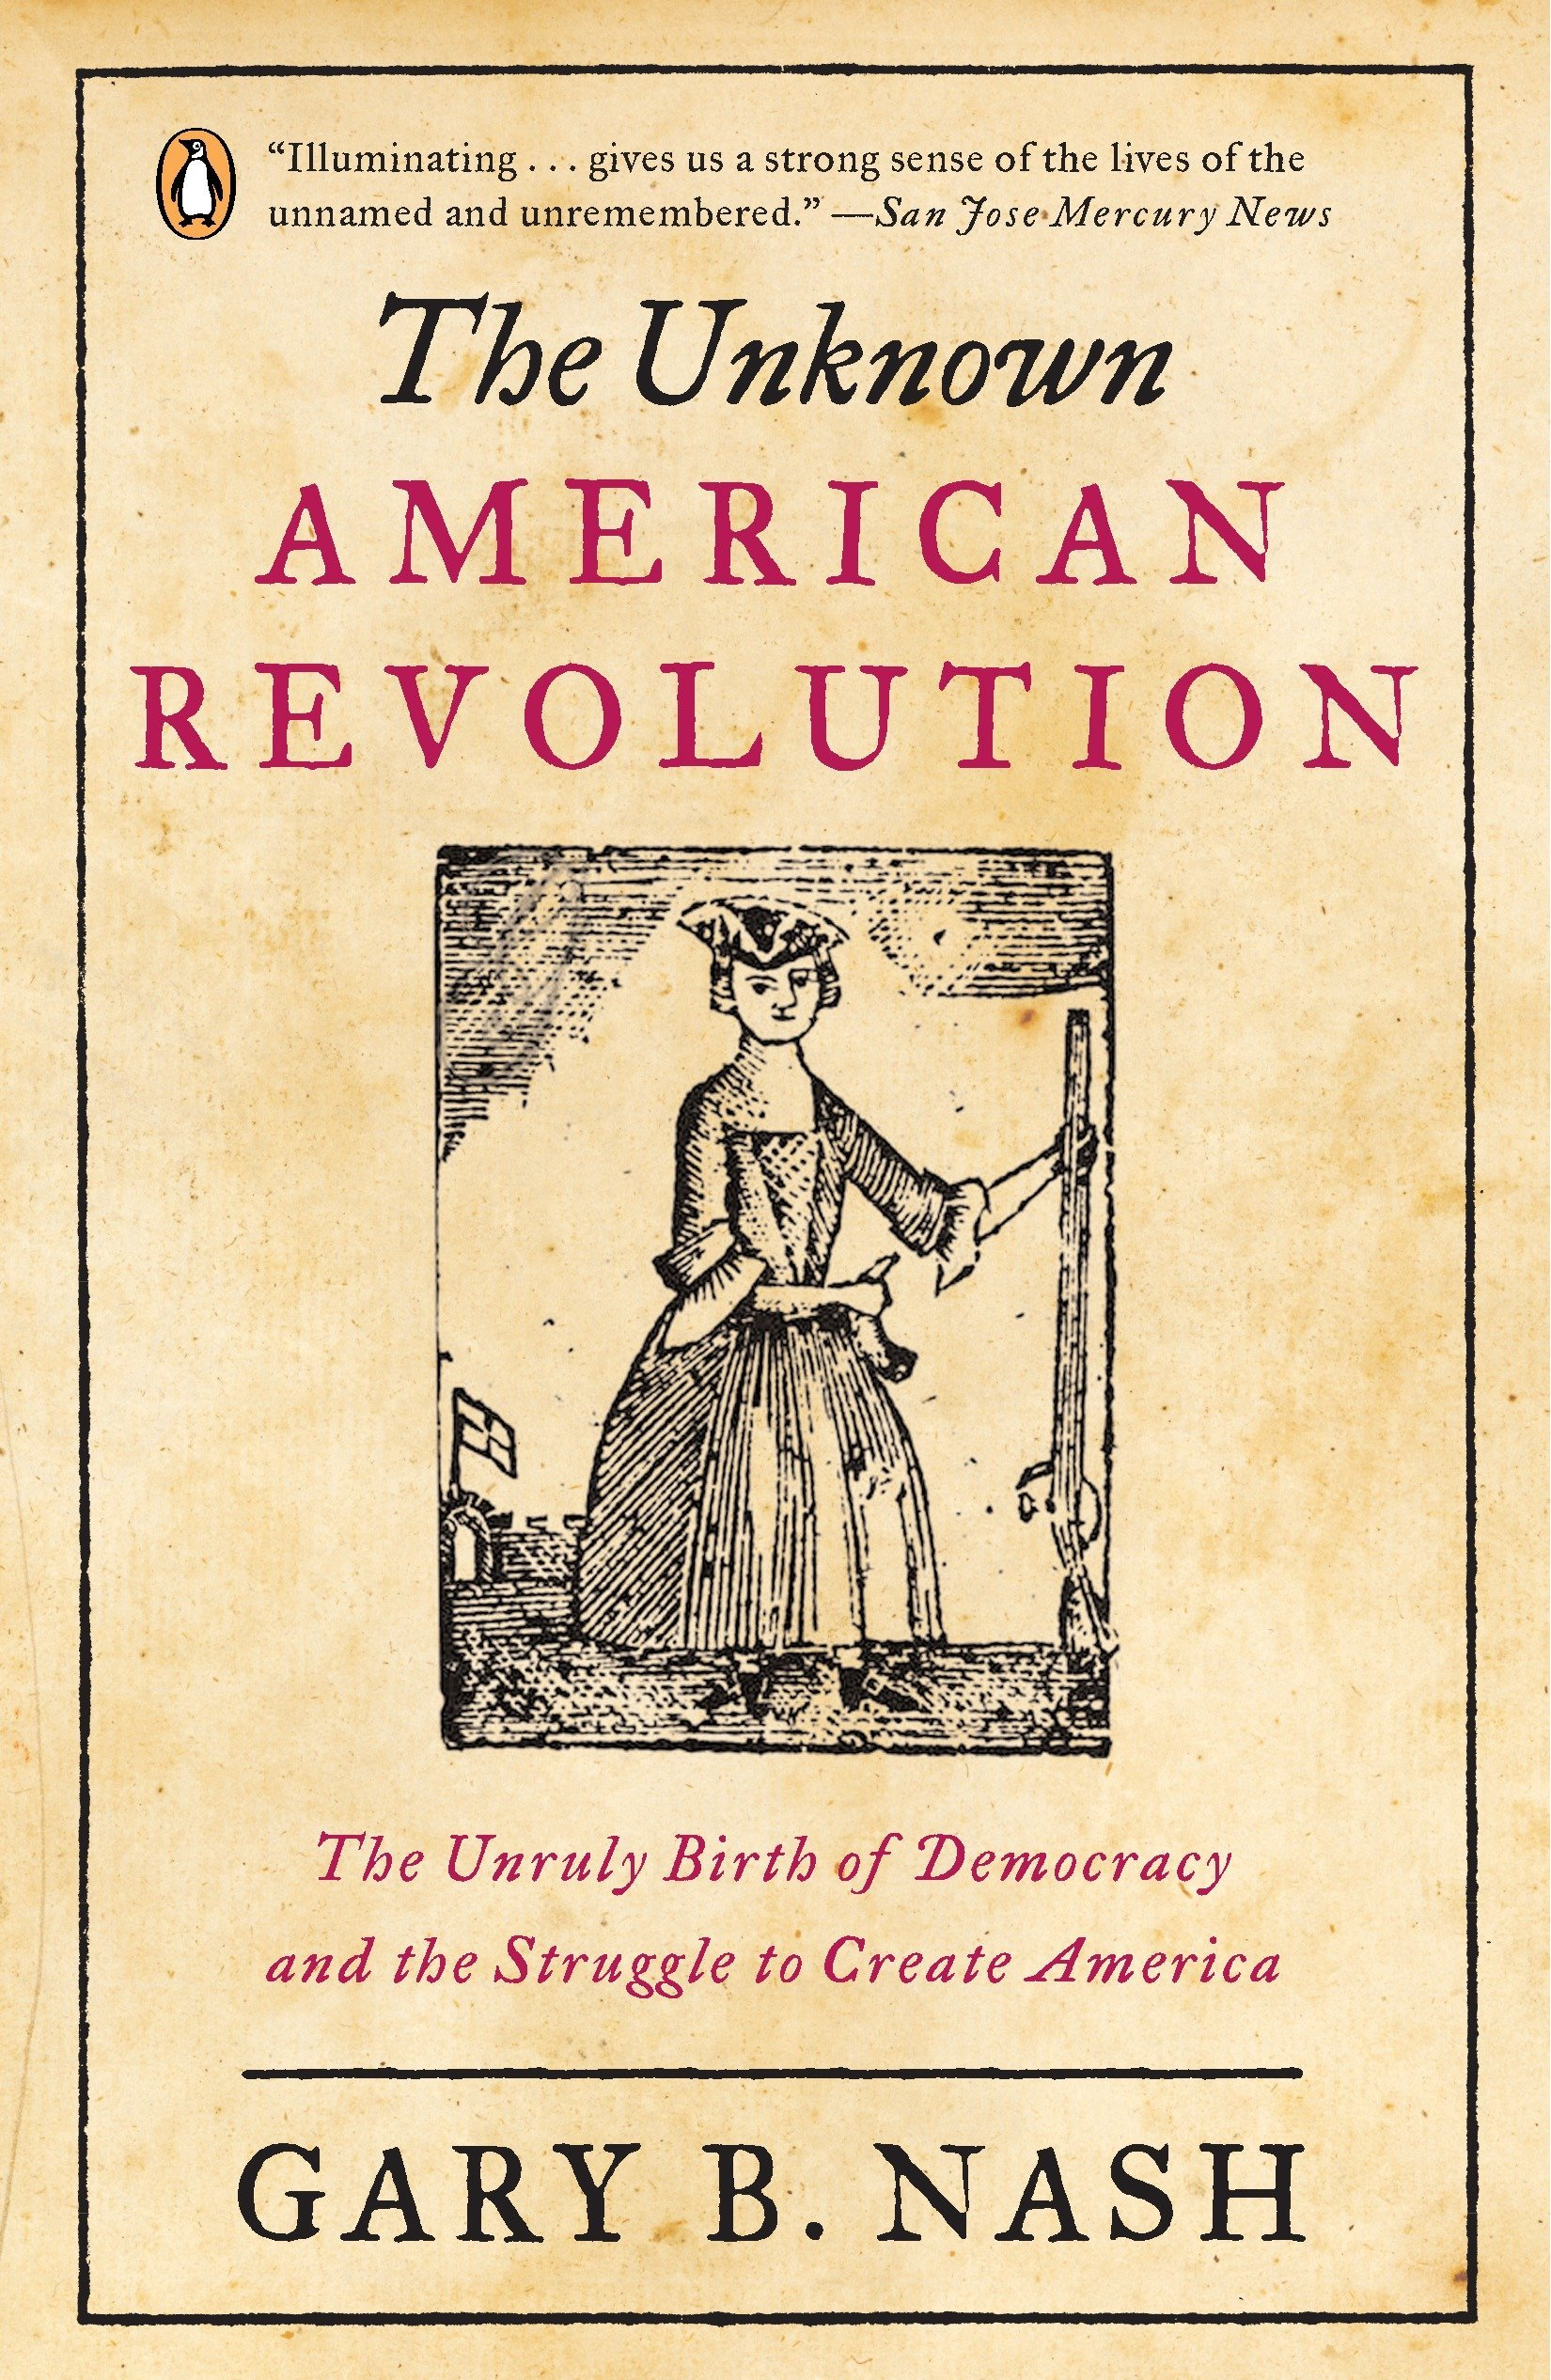 The unknown american revolution the unruly birth of democracy and the unknown american revolution the unruly birth of democracy and the struggle to create america gary b nash 9780143037200 amazon books fandeluxe Choice Image